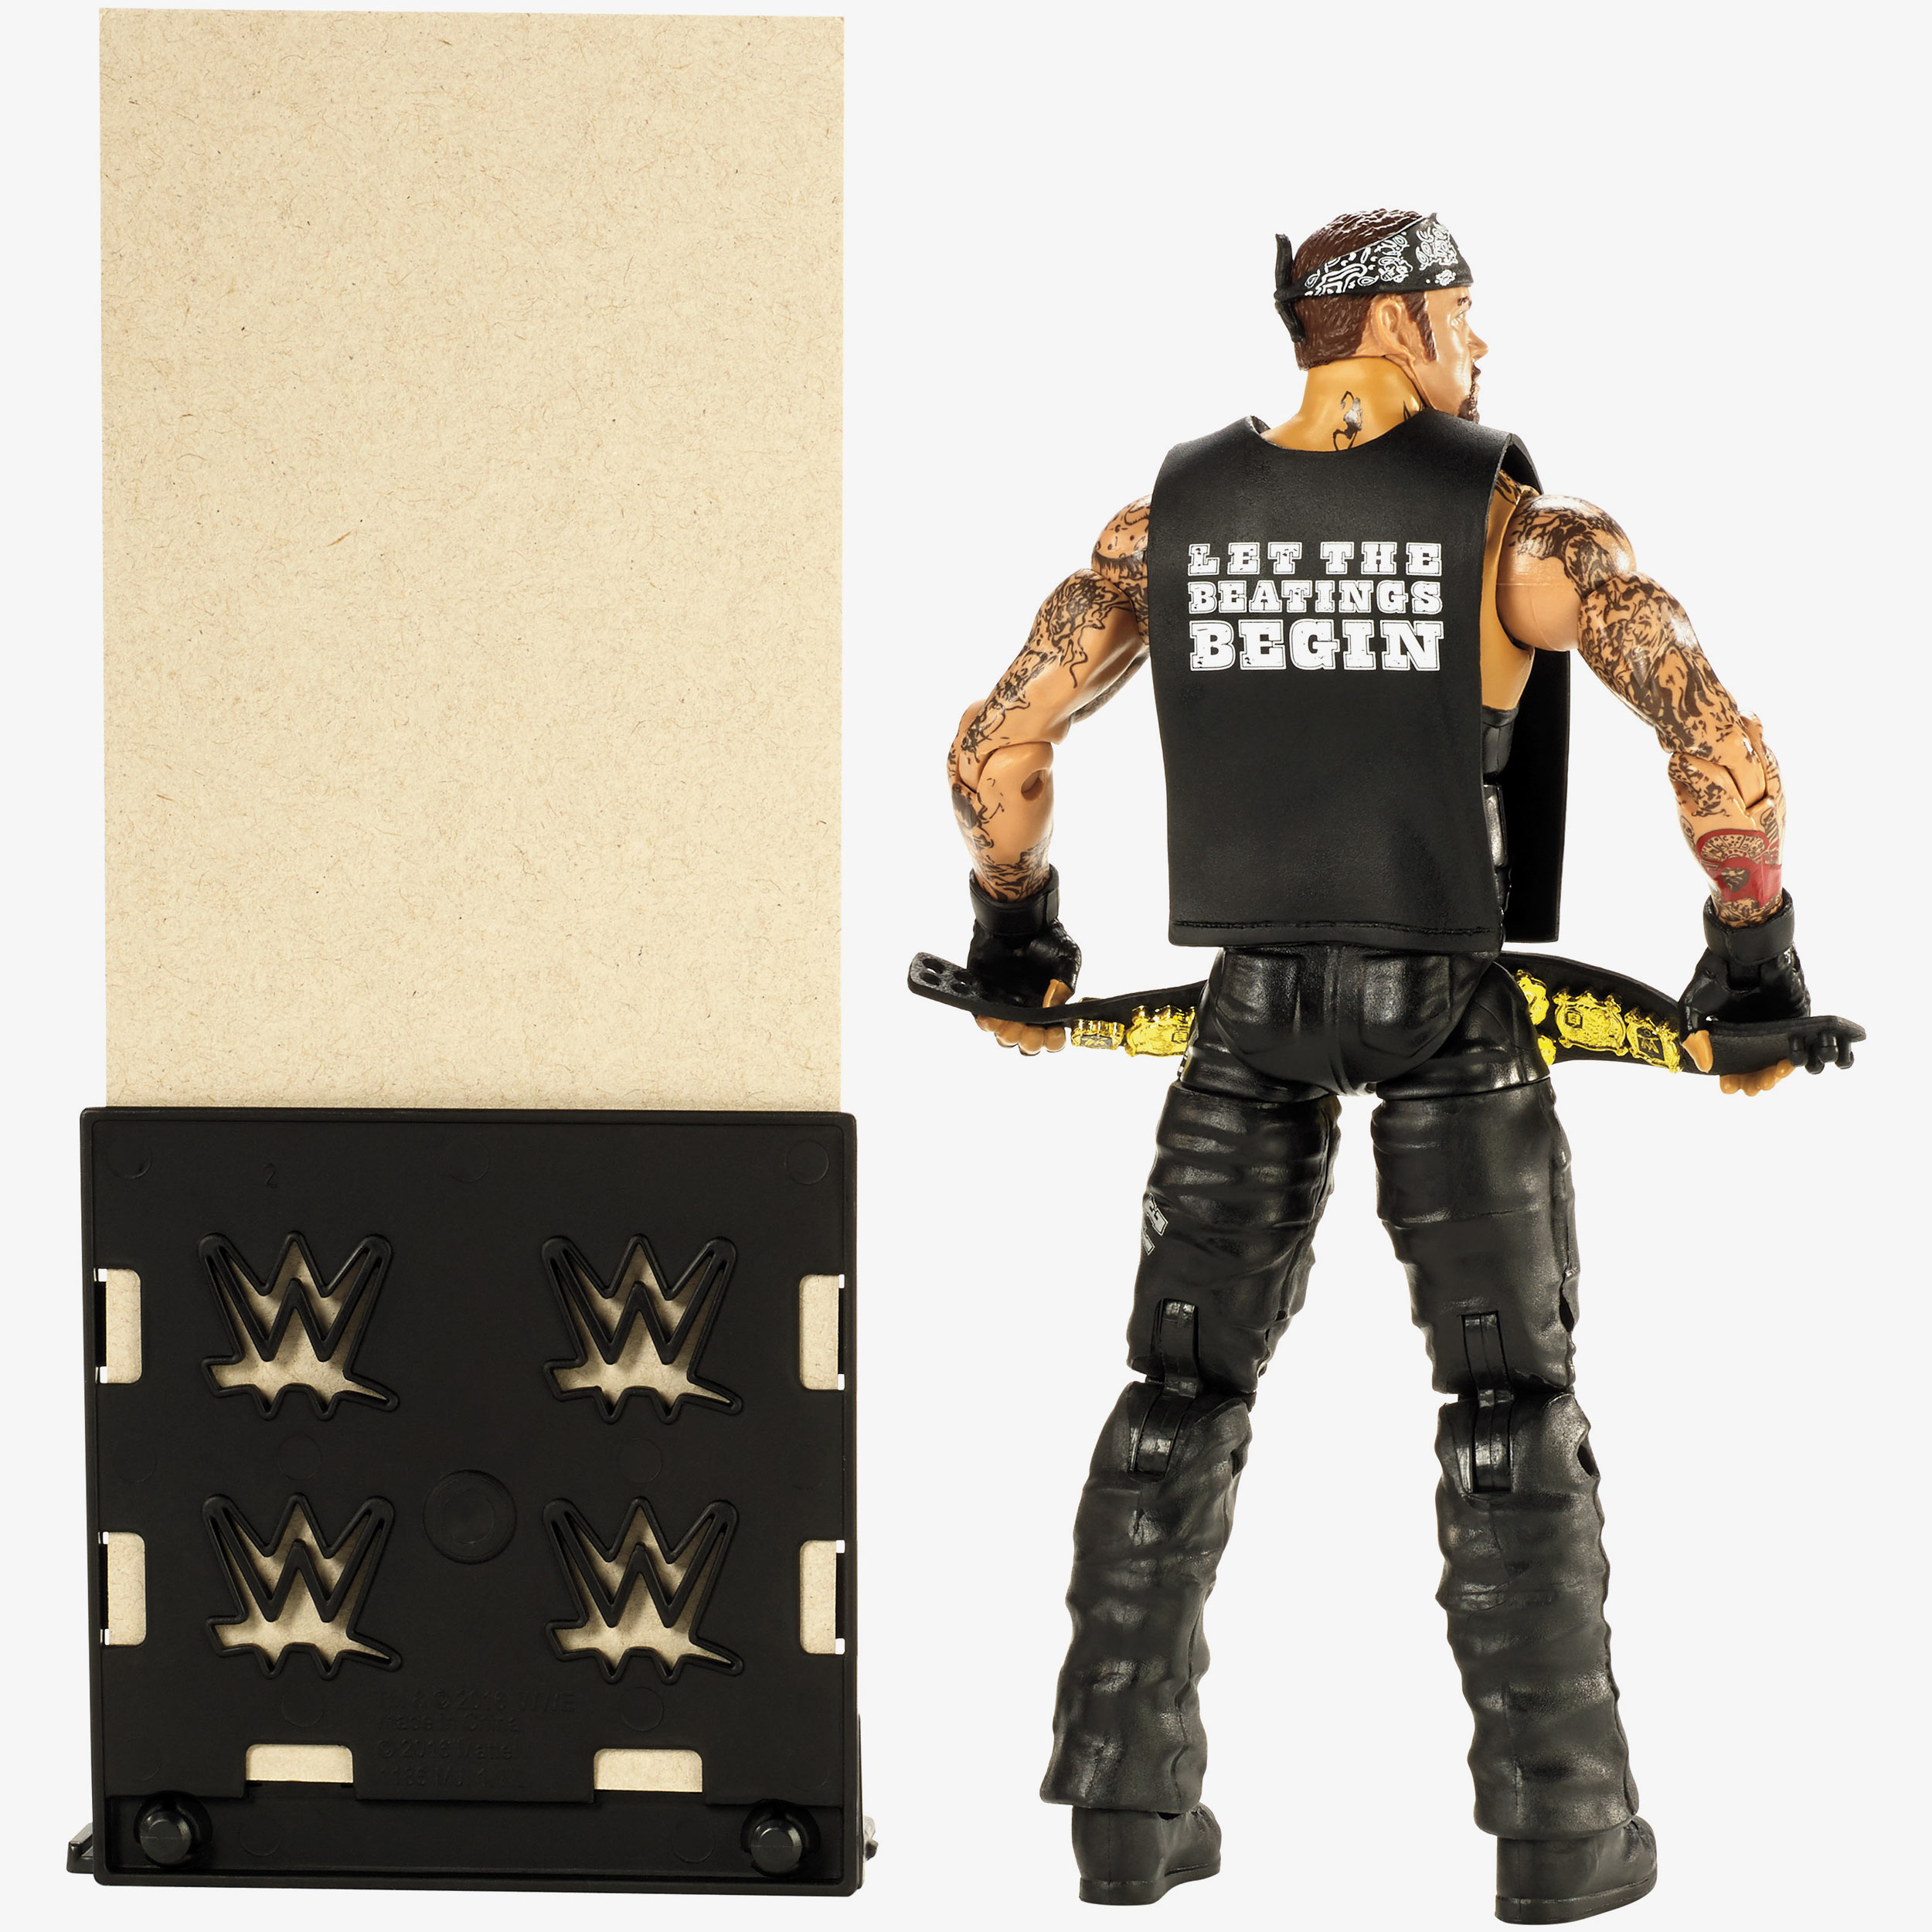 Best Rare Wwe Mattel Figures of 2019 - Top Rated and ...